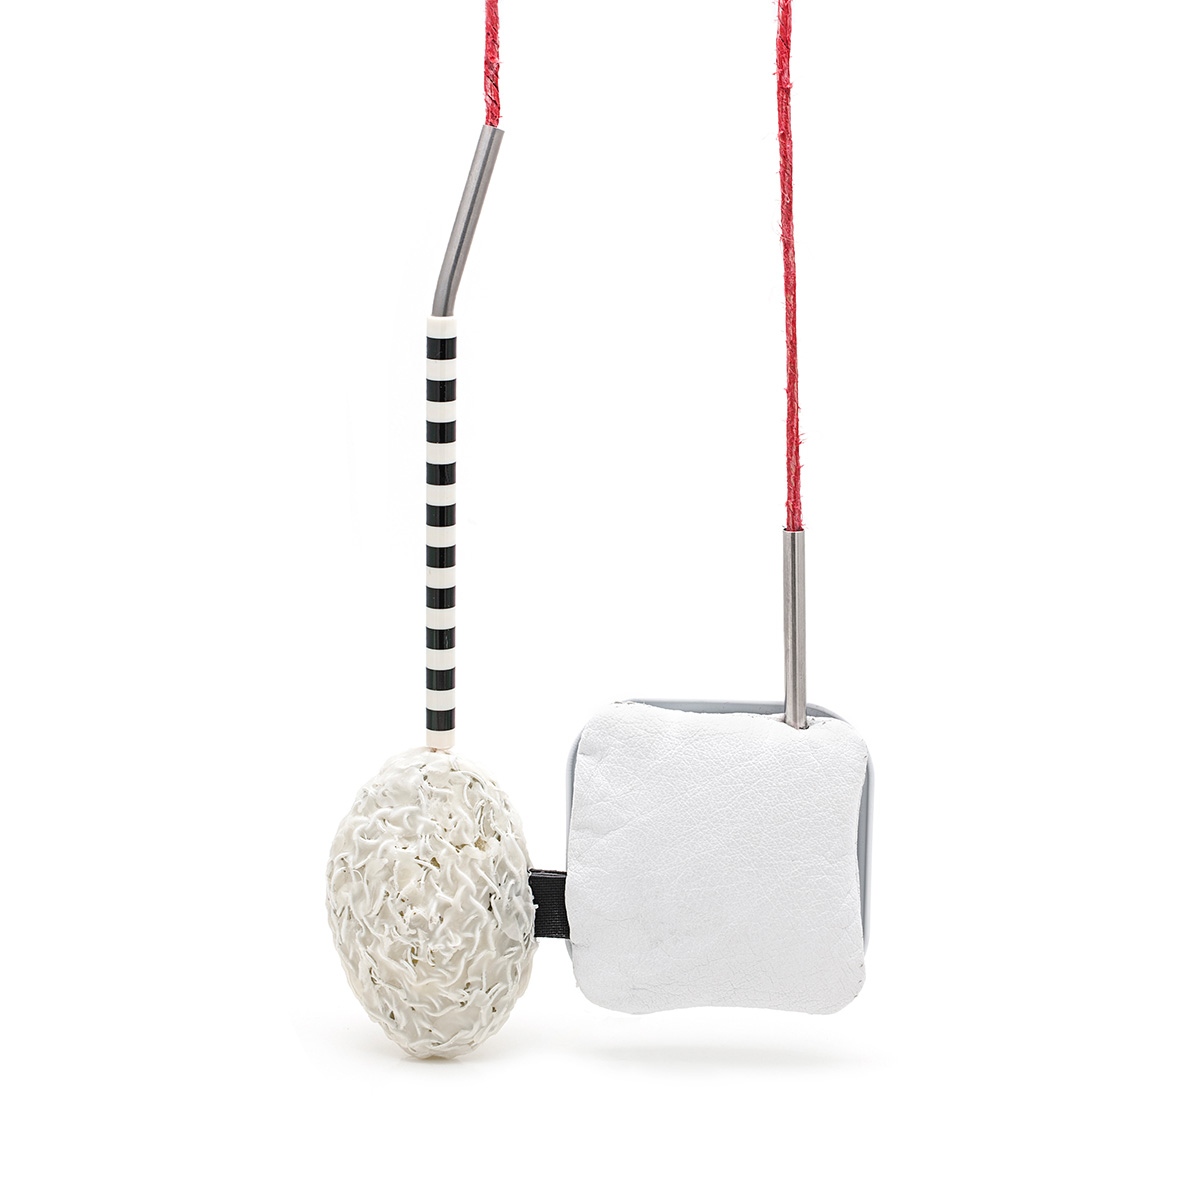 Yoshie Hattori   Droplet  Plastic, metal, leather, stainless steel, linen